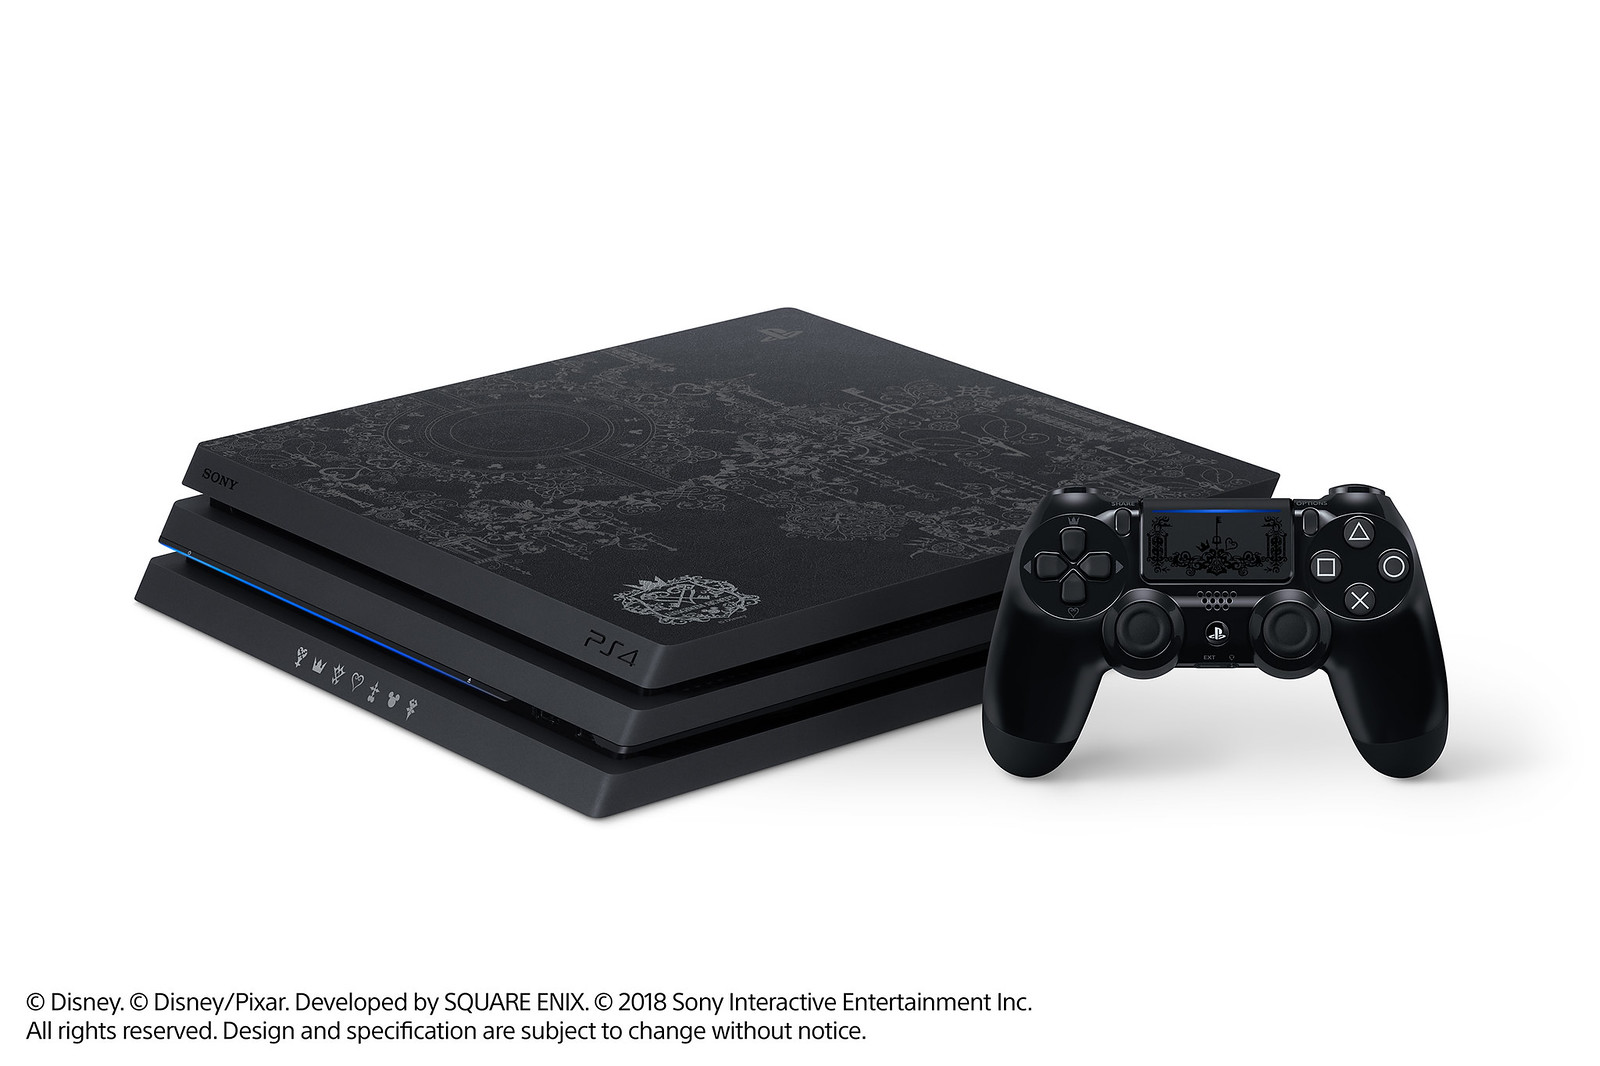 Limited Edition Kingdom Hearts III PS4 Pro Bundle